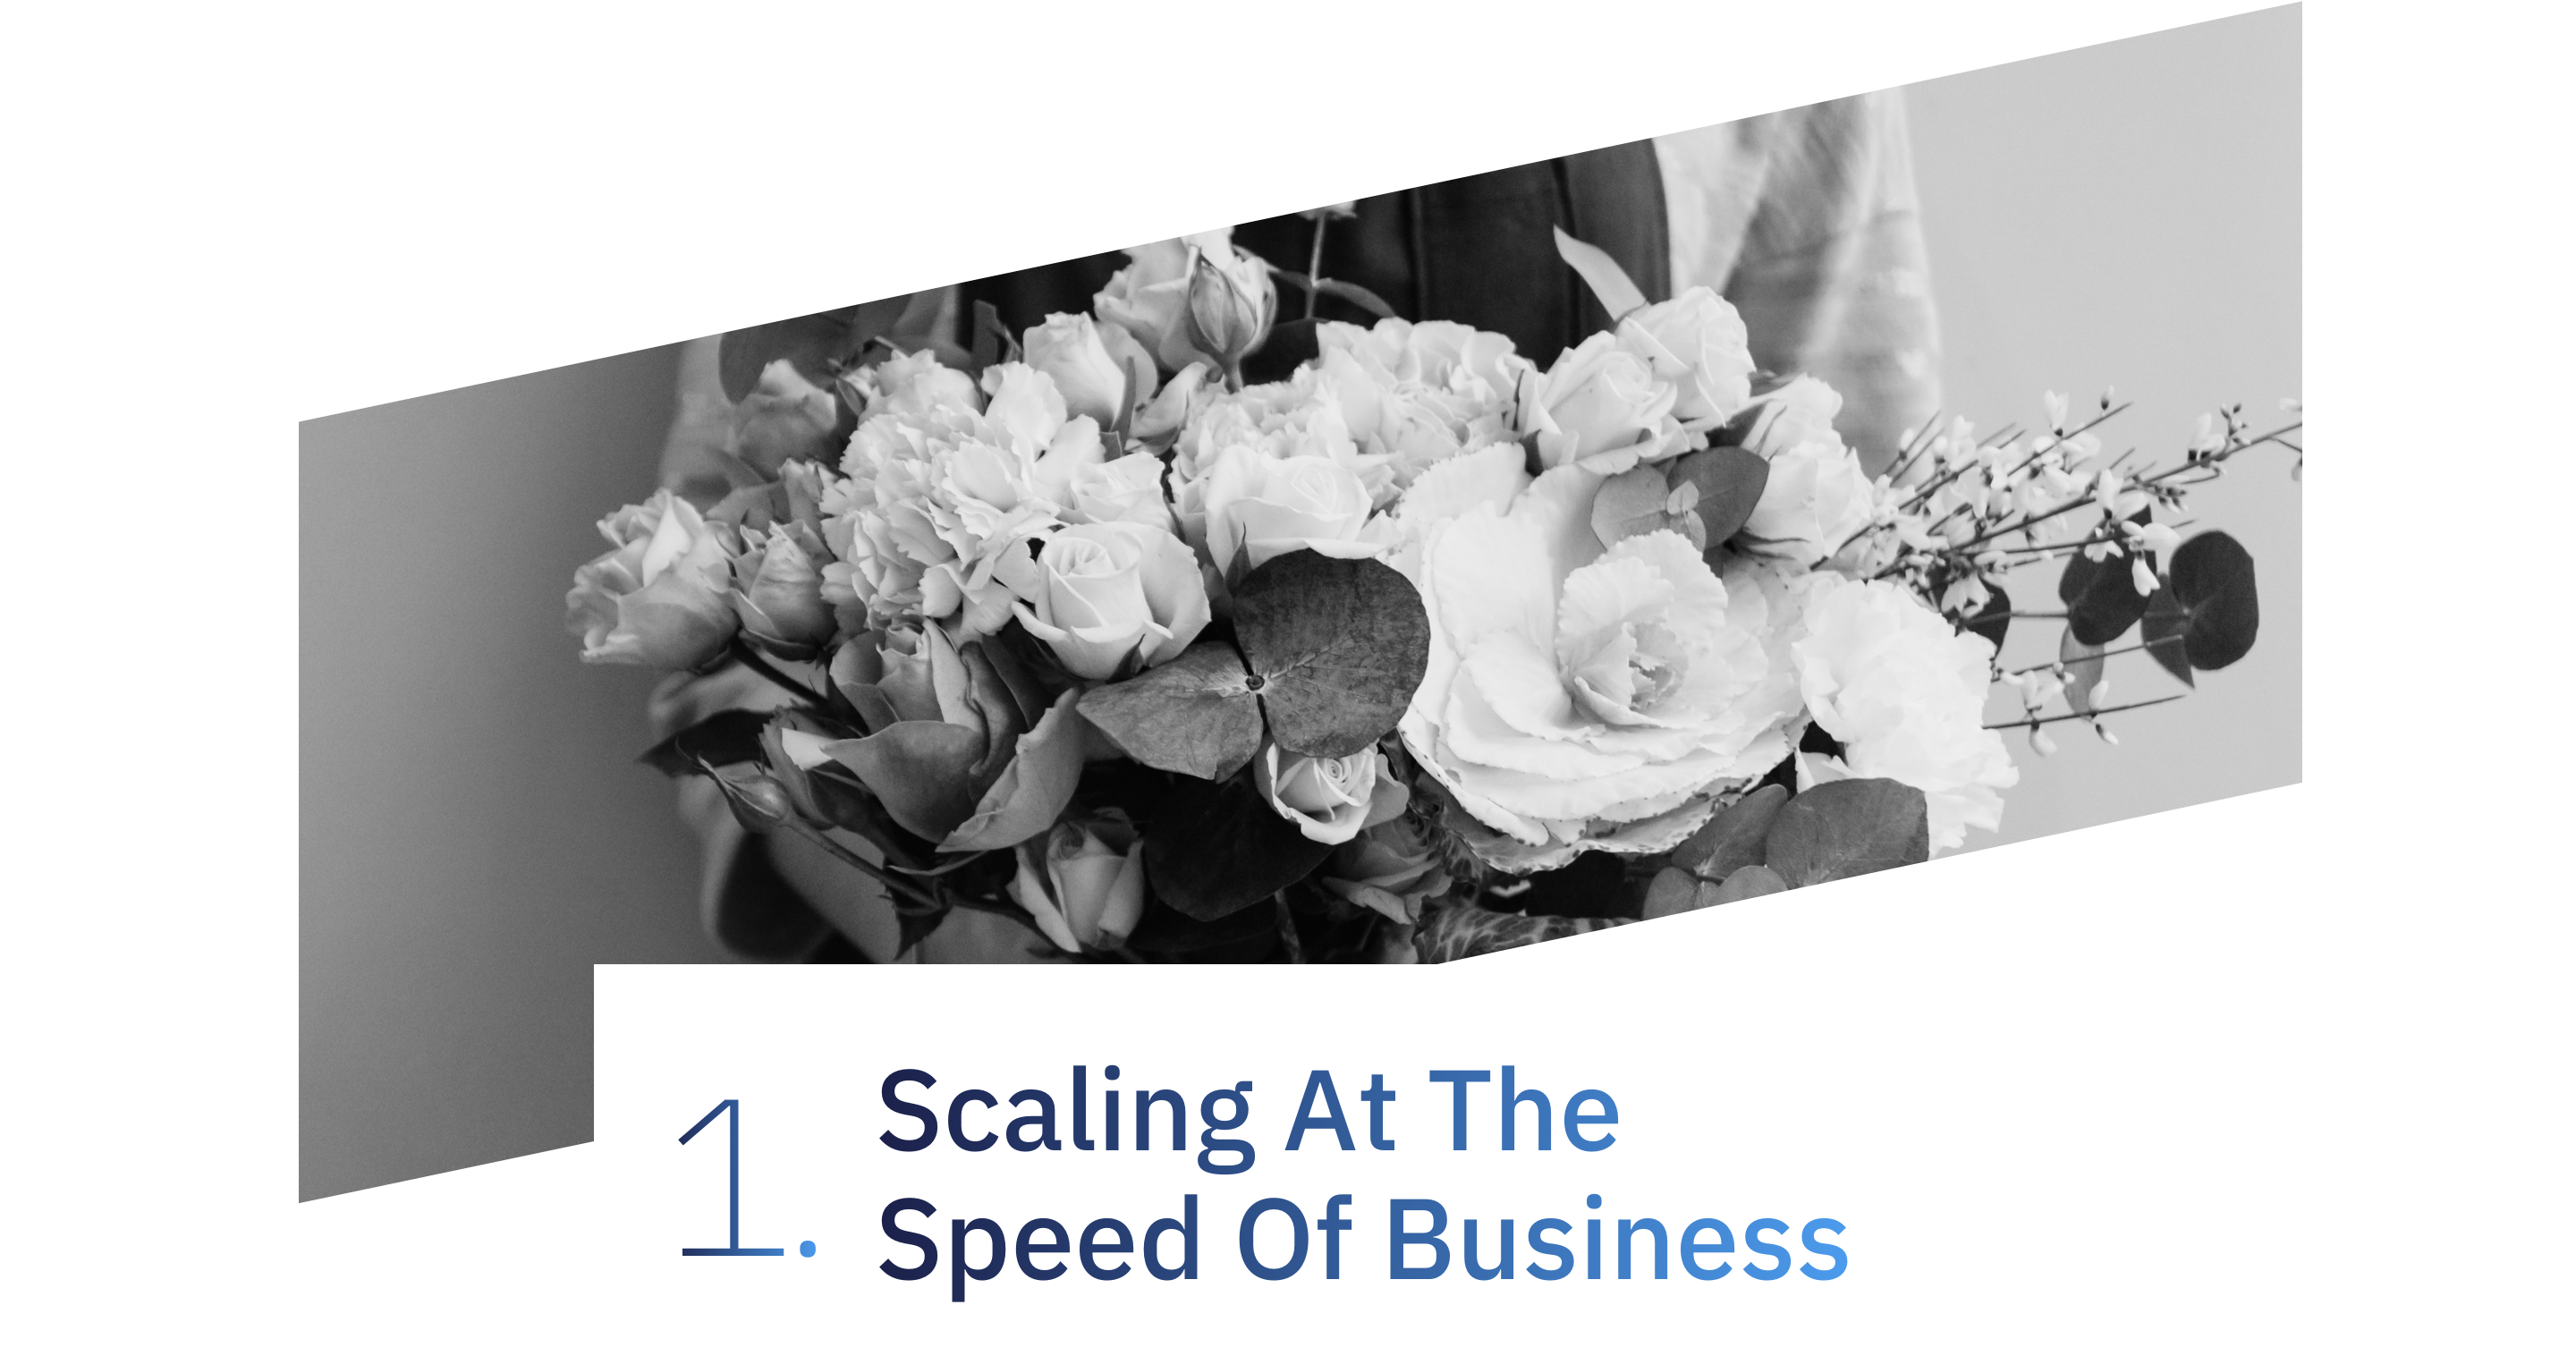 1. Scaling At The Speed Of Business